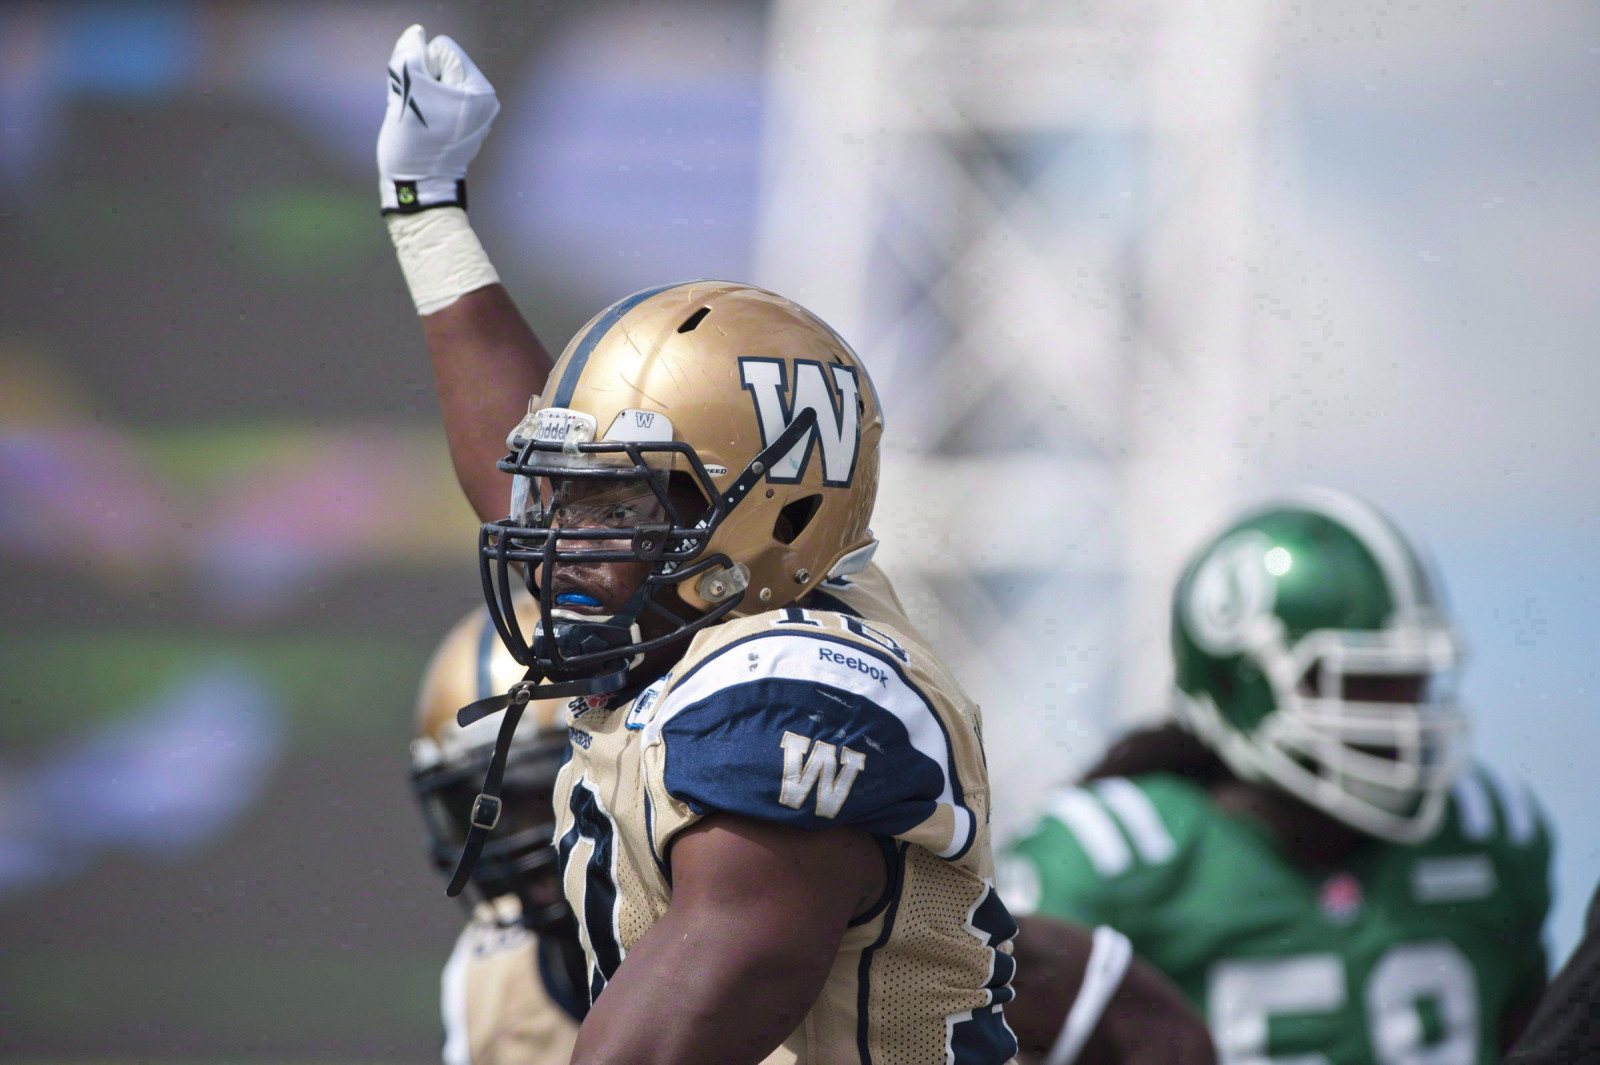 Winnipeg Blue Bombers linebacker Henoc Muamba celebrates a tackle against the Saskatchewan Roughriders during the first half of CFL football action in Regina, Sask., Sunday, September 1, 2013. The Montreal Alouettes have agreed to terms with free agent linebacker Muamba.THE CANADIAN PRESS/Liam Richards